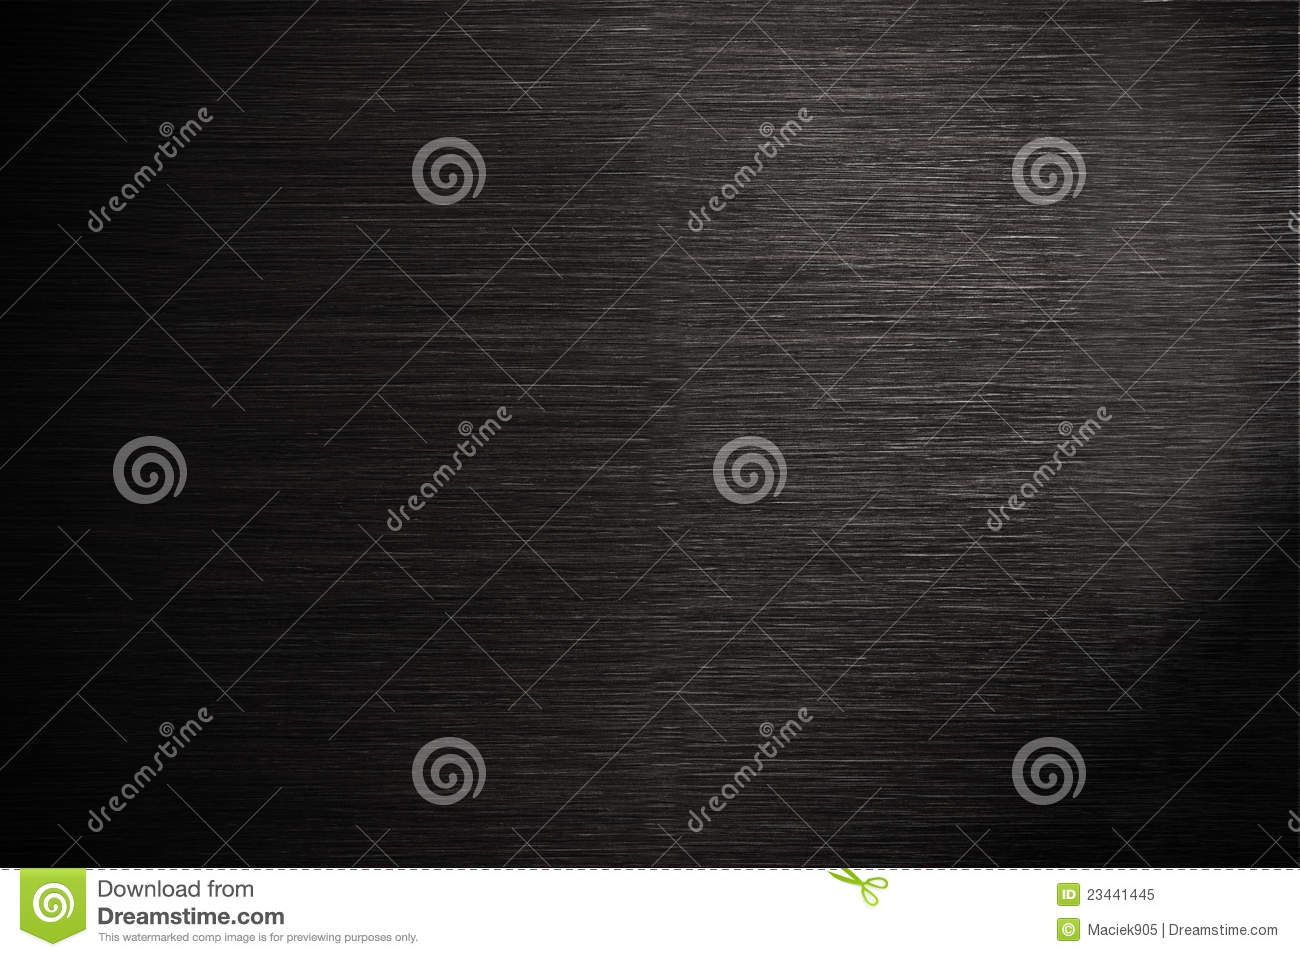 Wooden Tiles Floor Texture Black Wood